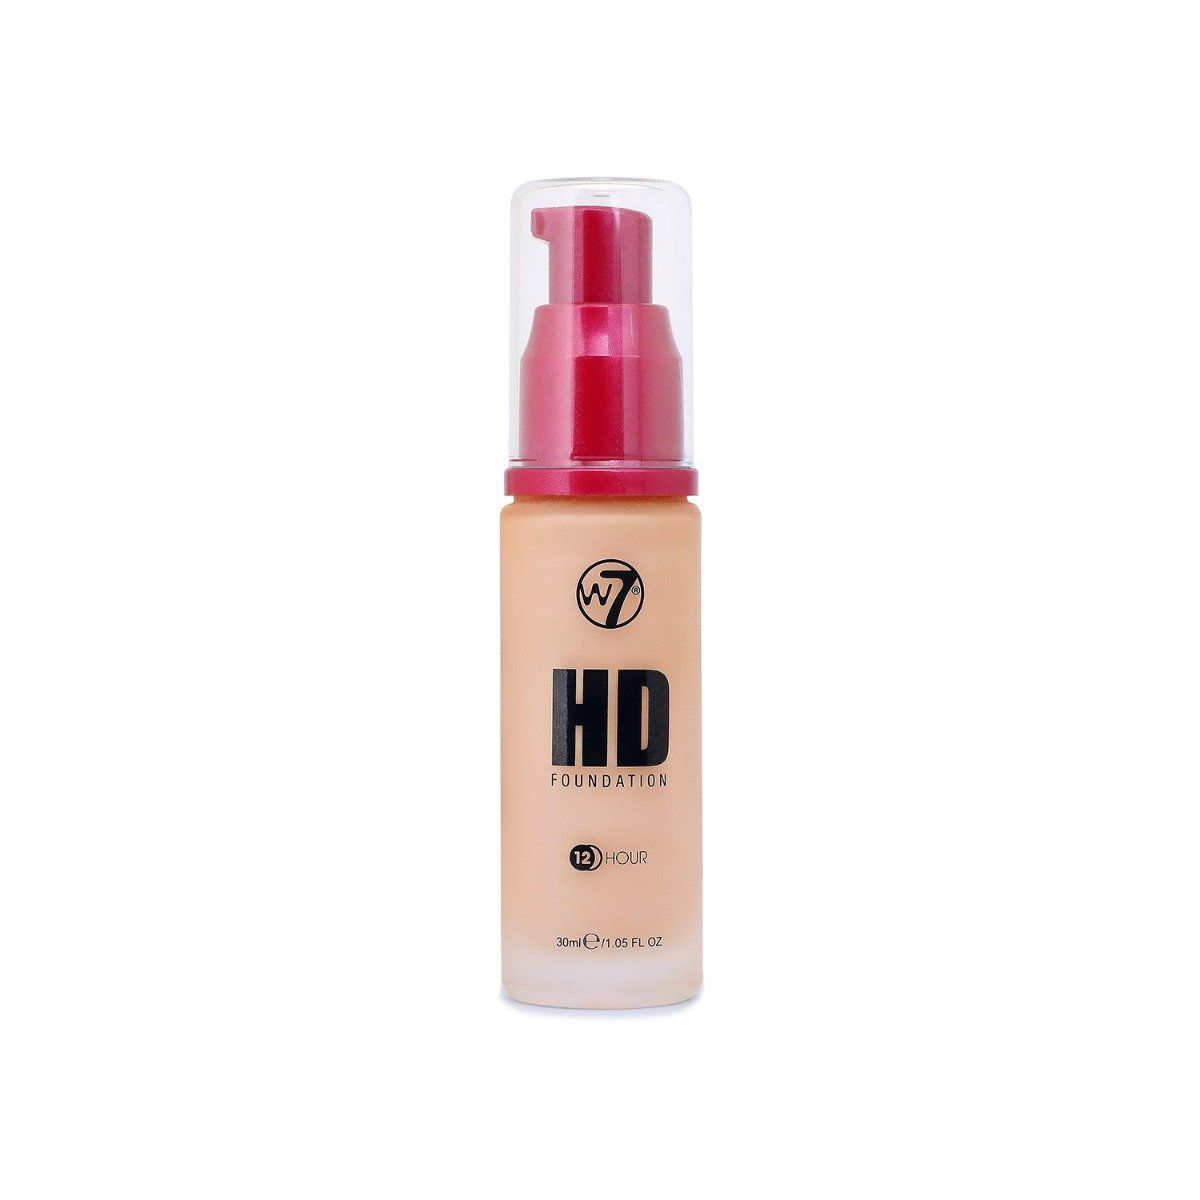 W7 12 Hour HD Foundation - Golden - New Ultra Smooth Full Coverage Formula